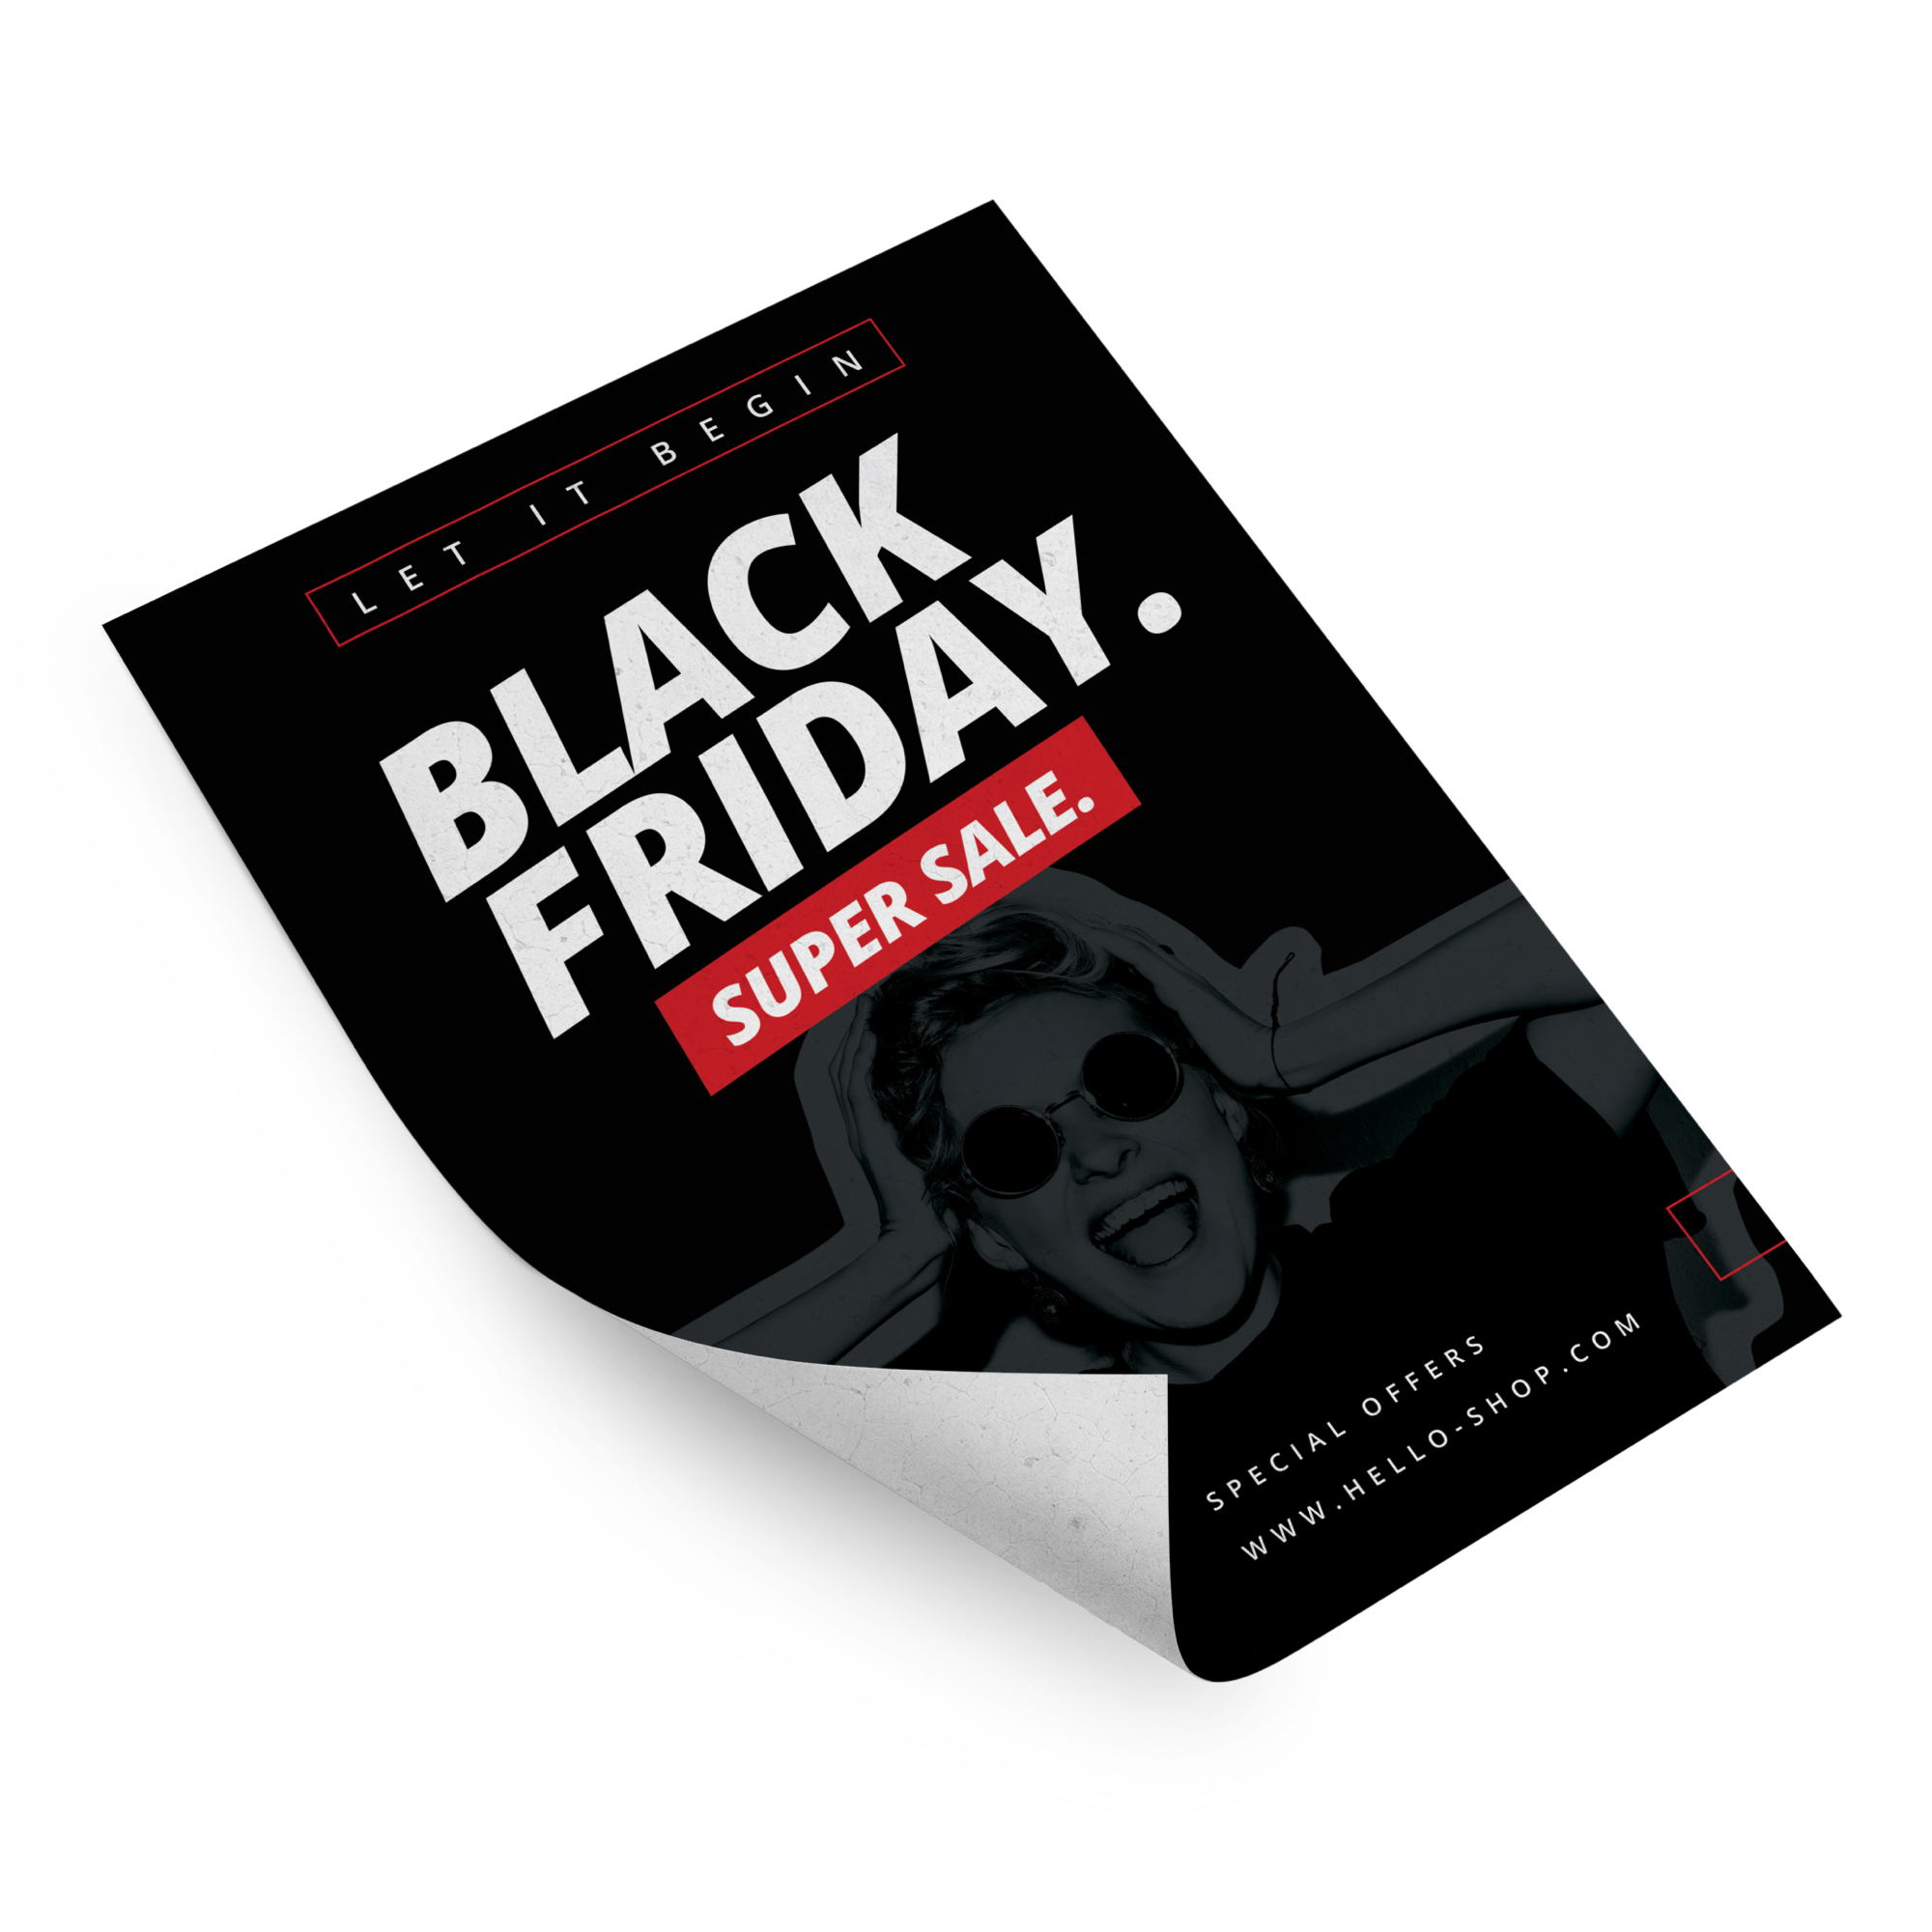 Flyers drukken voor Black Friday